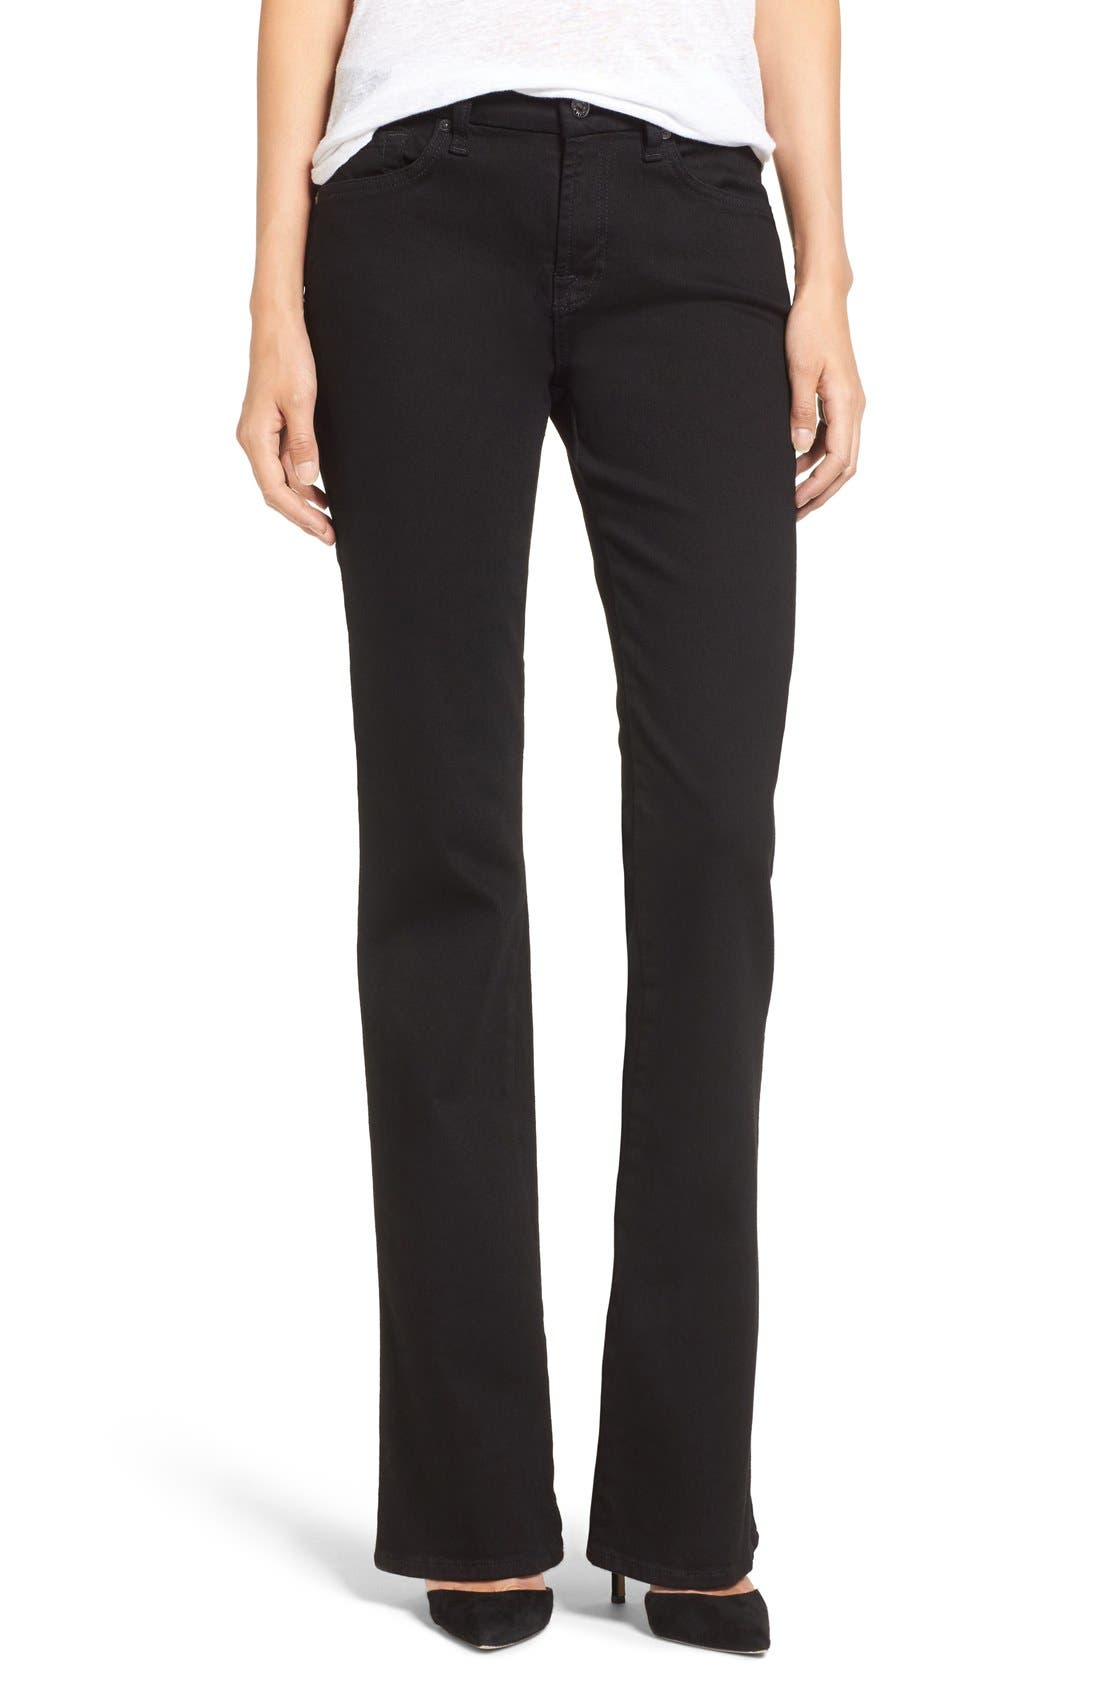 Alternate Image 1 Selected - 7 For All Mankind® 'Kimmie' Bootcut Jeans (Washed Overdyed Black)